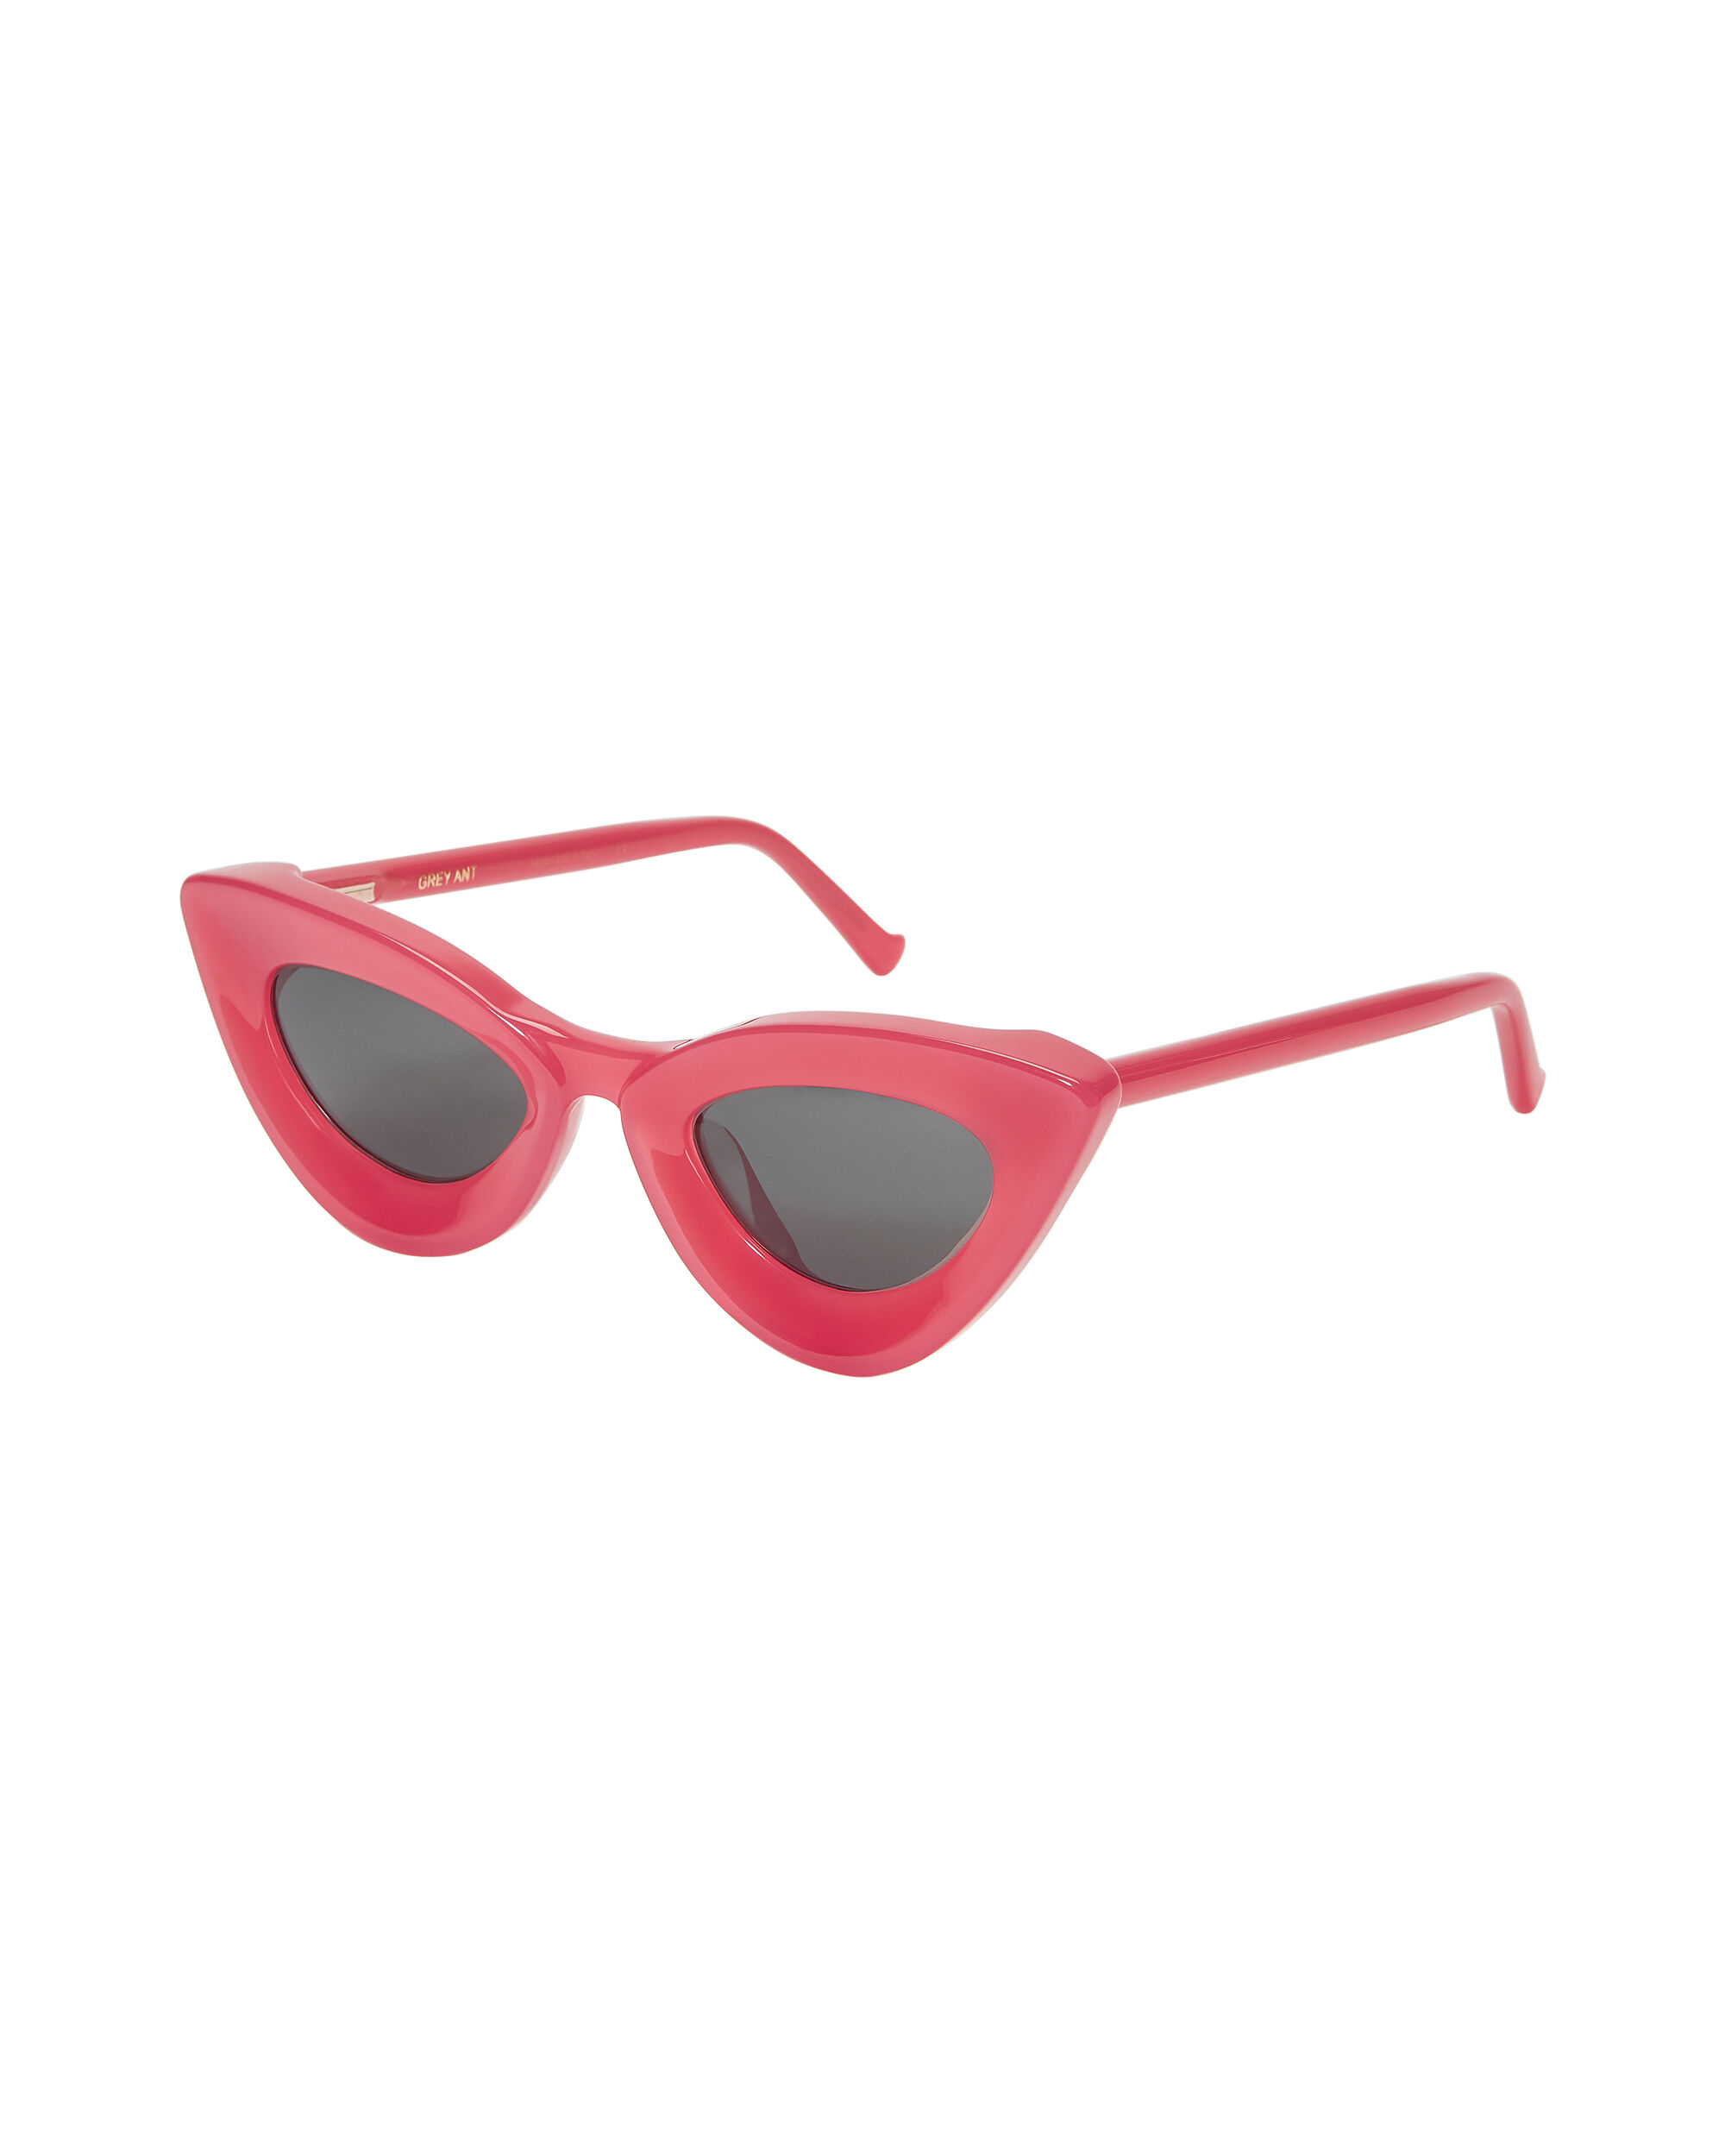 Iemall Pink Cat Eye Sunglasses, PINK, hi-res